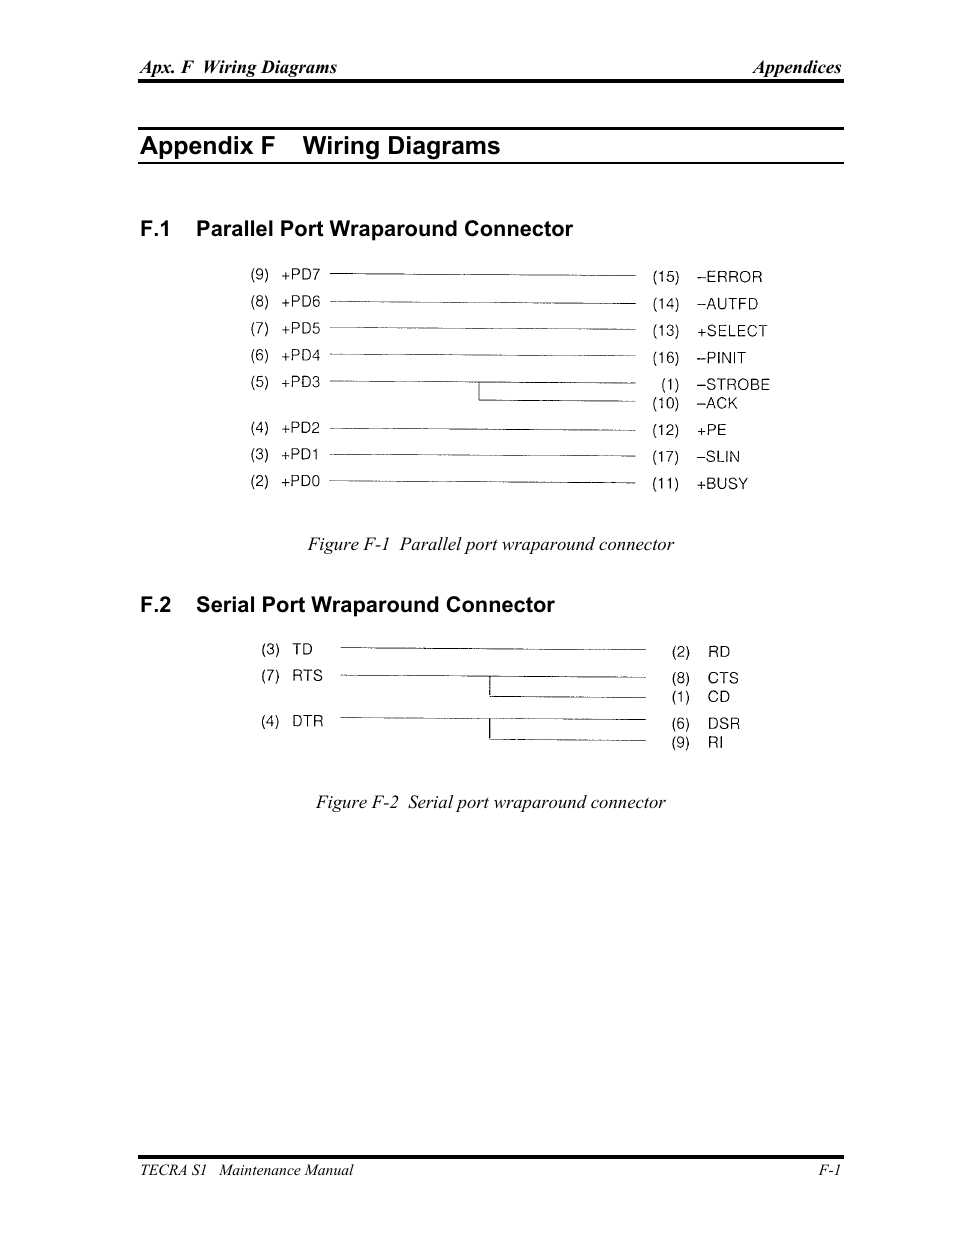 medium resolution of appendix f wiring diagrams parallel port wraparound connector serial port wraparound connector toshiba tecra s1 user manual page 265 268